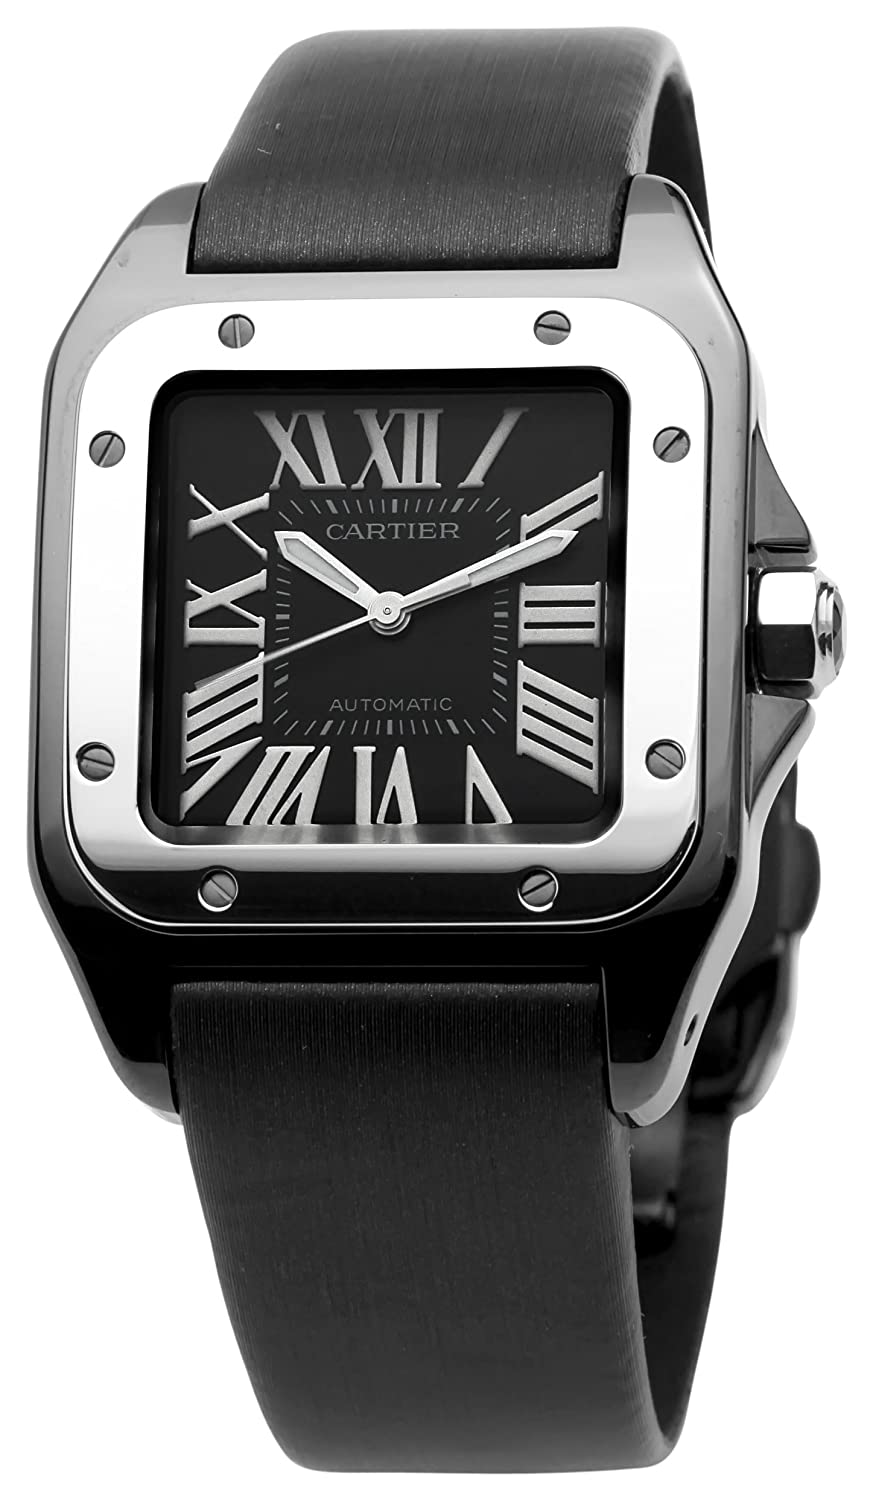 santos watch amazon watches cartier automatic com midsize dp leather